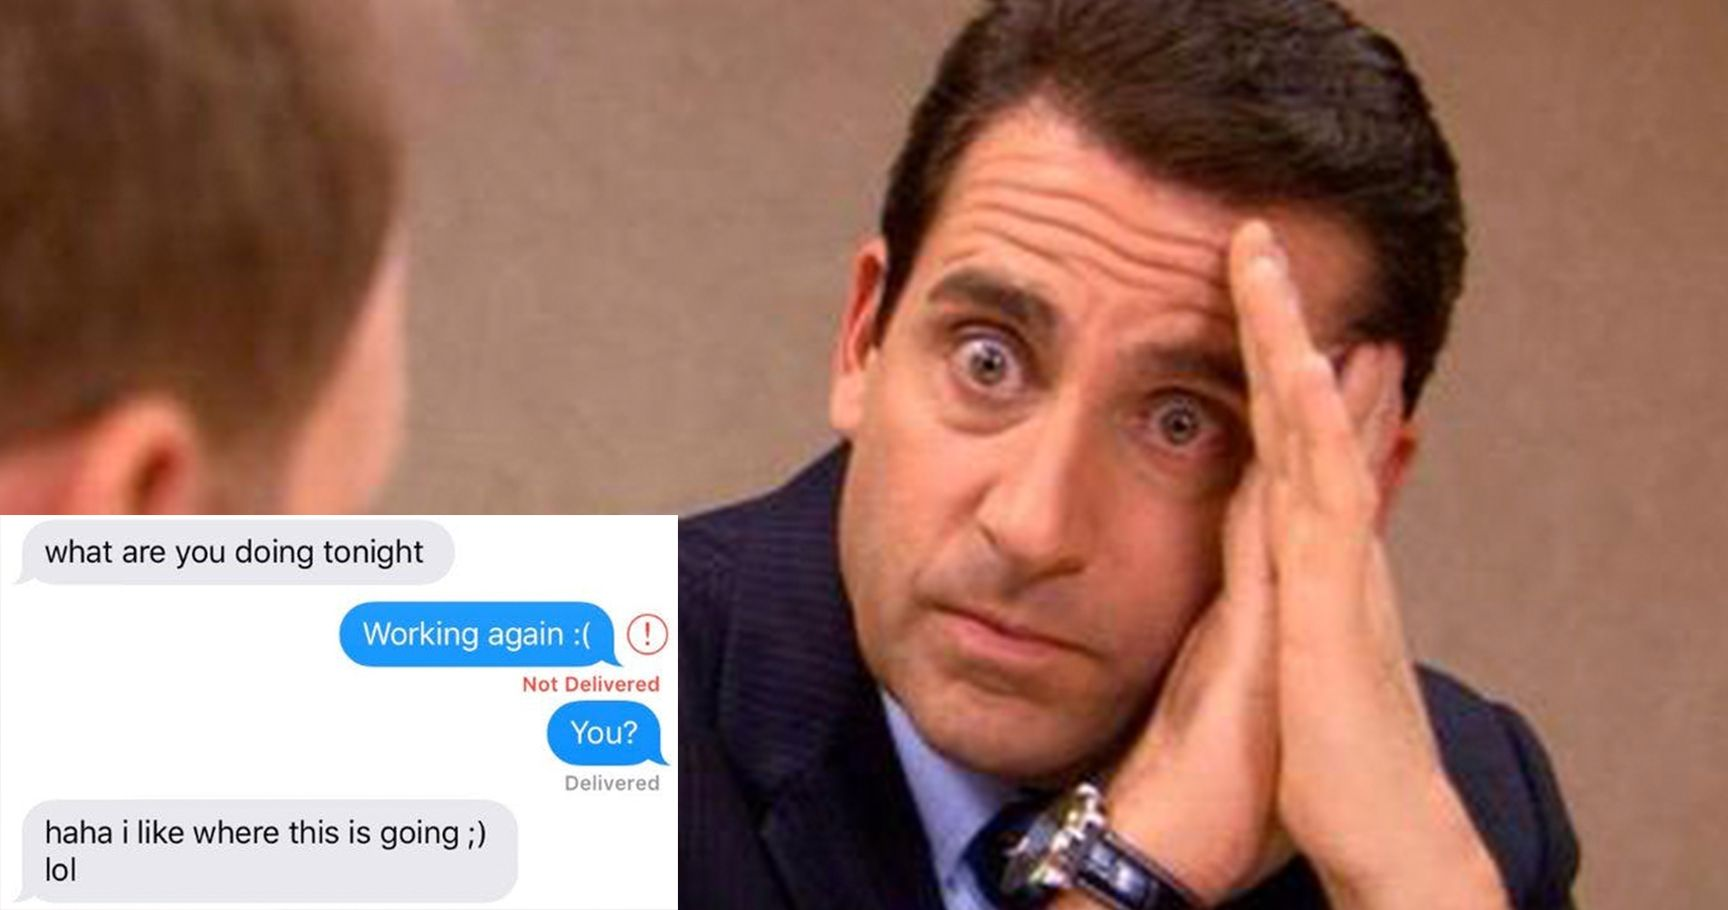 15 Texting Disasters That Prove Your Phone's Out To Destroy Your Life